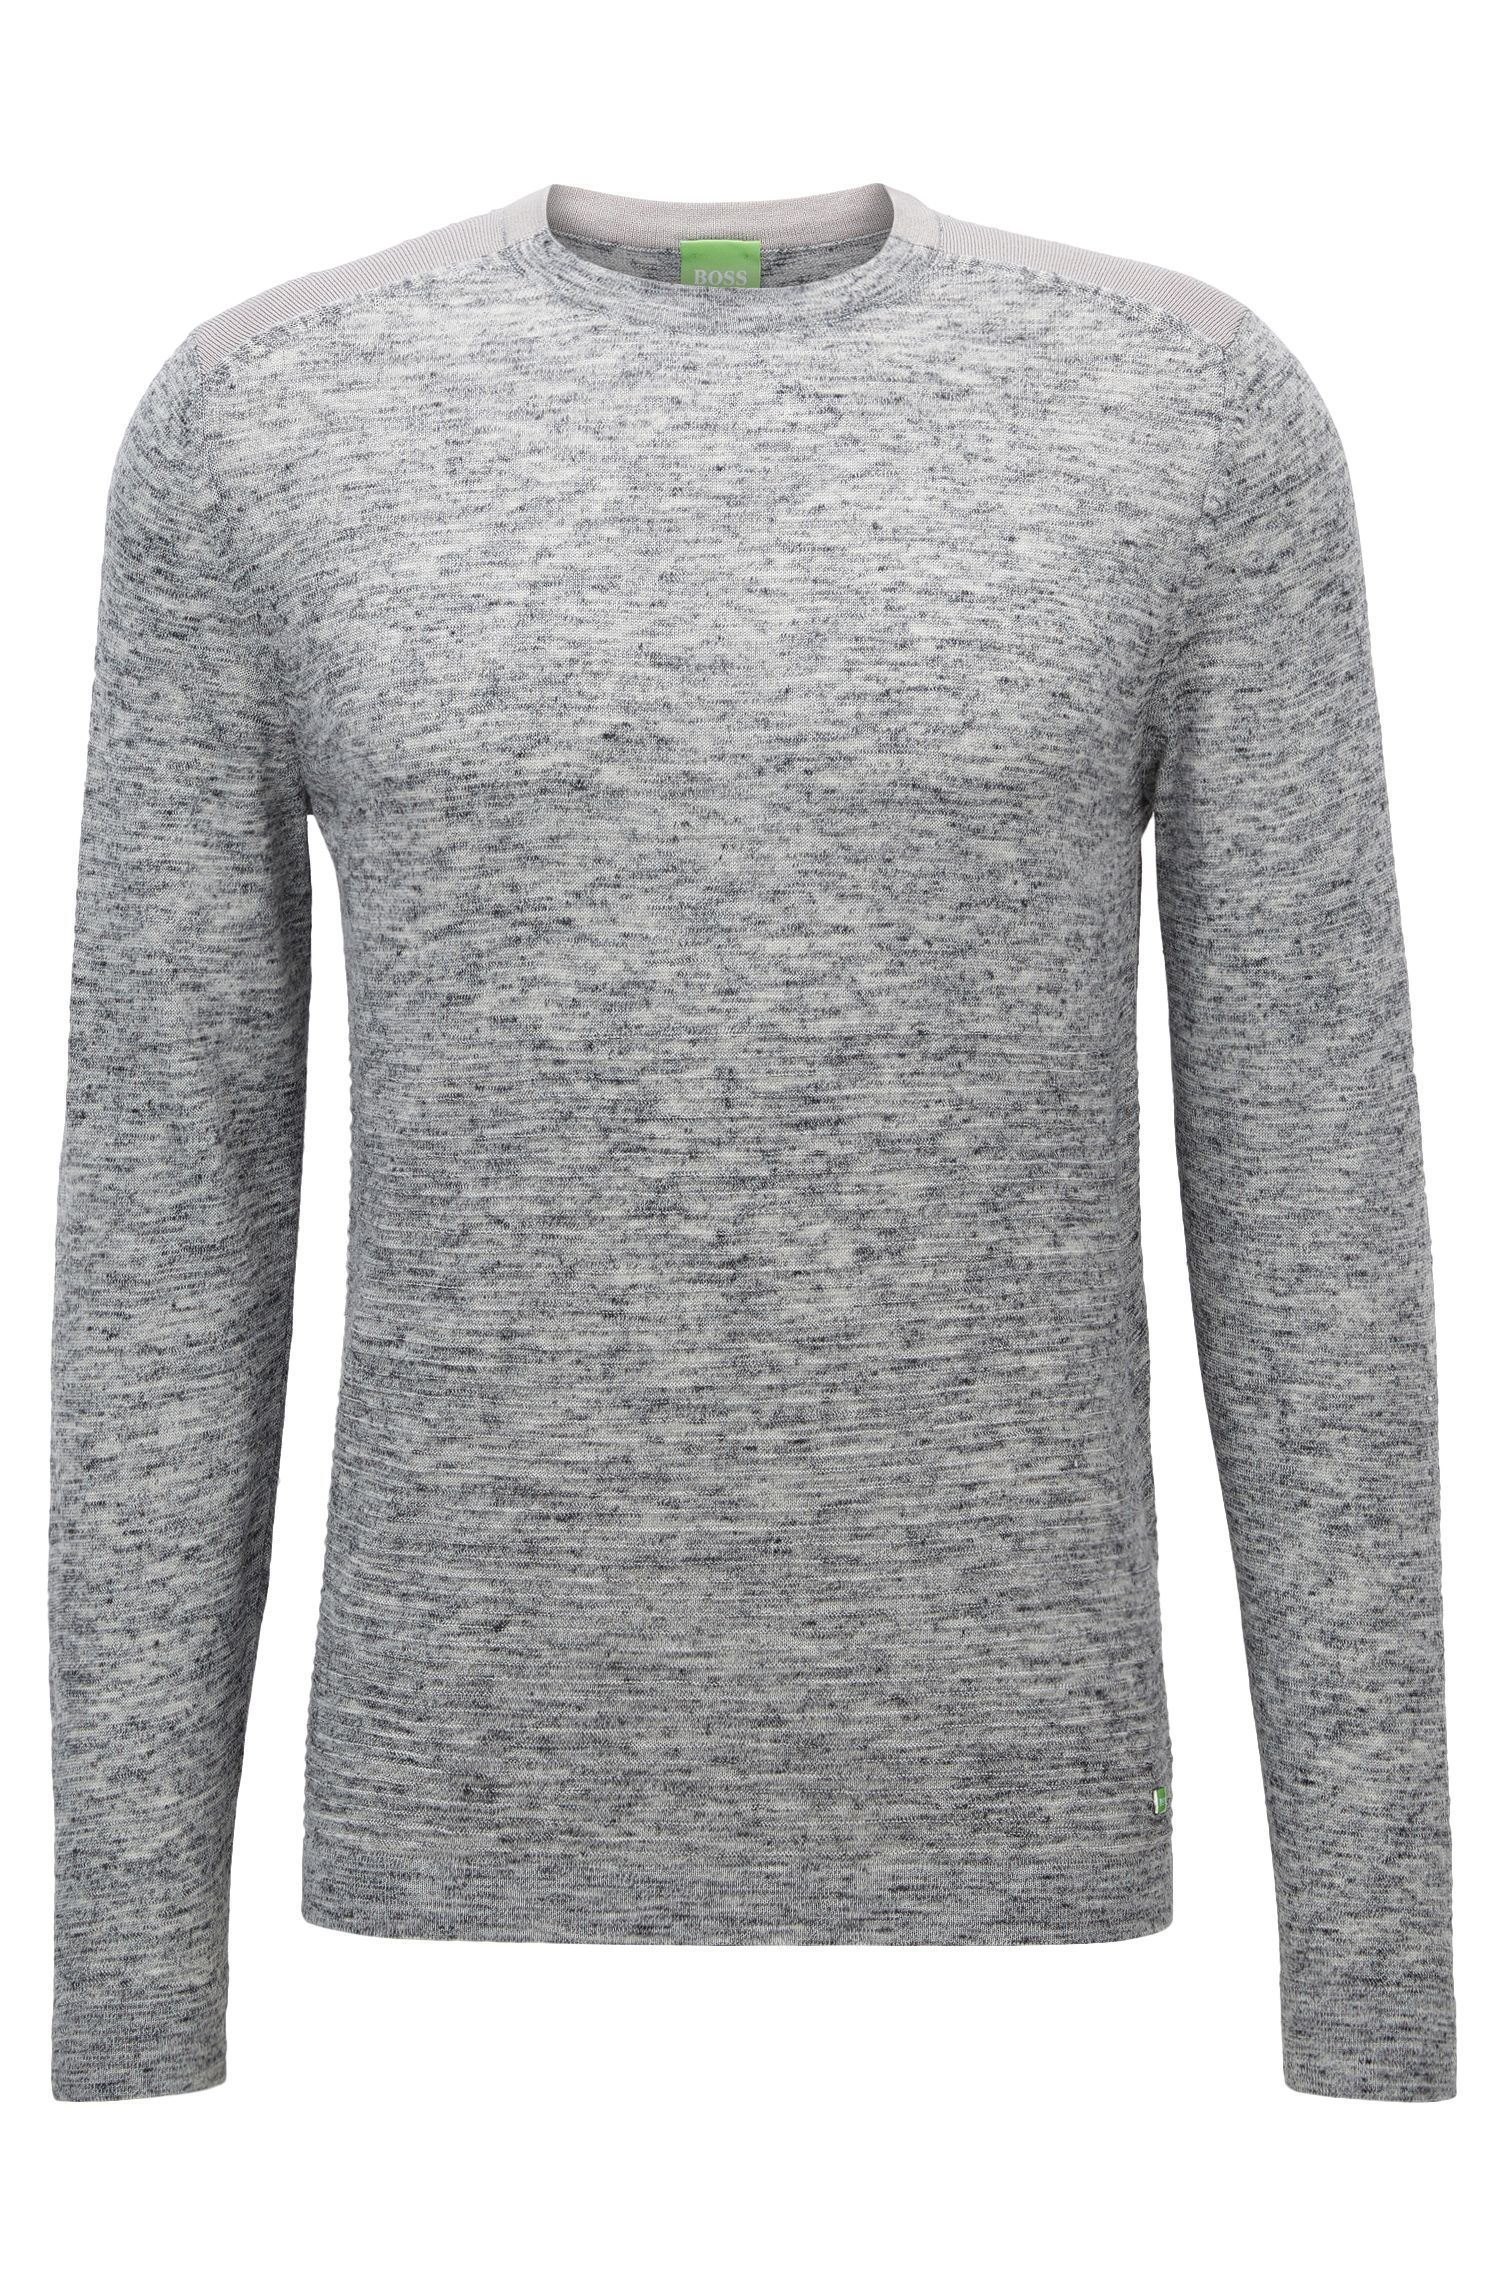 Crew-neck sweater in knitted fabric